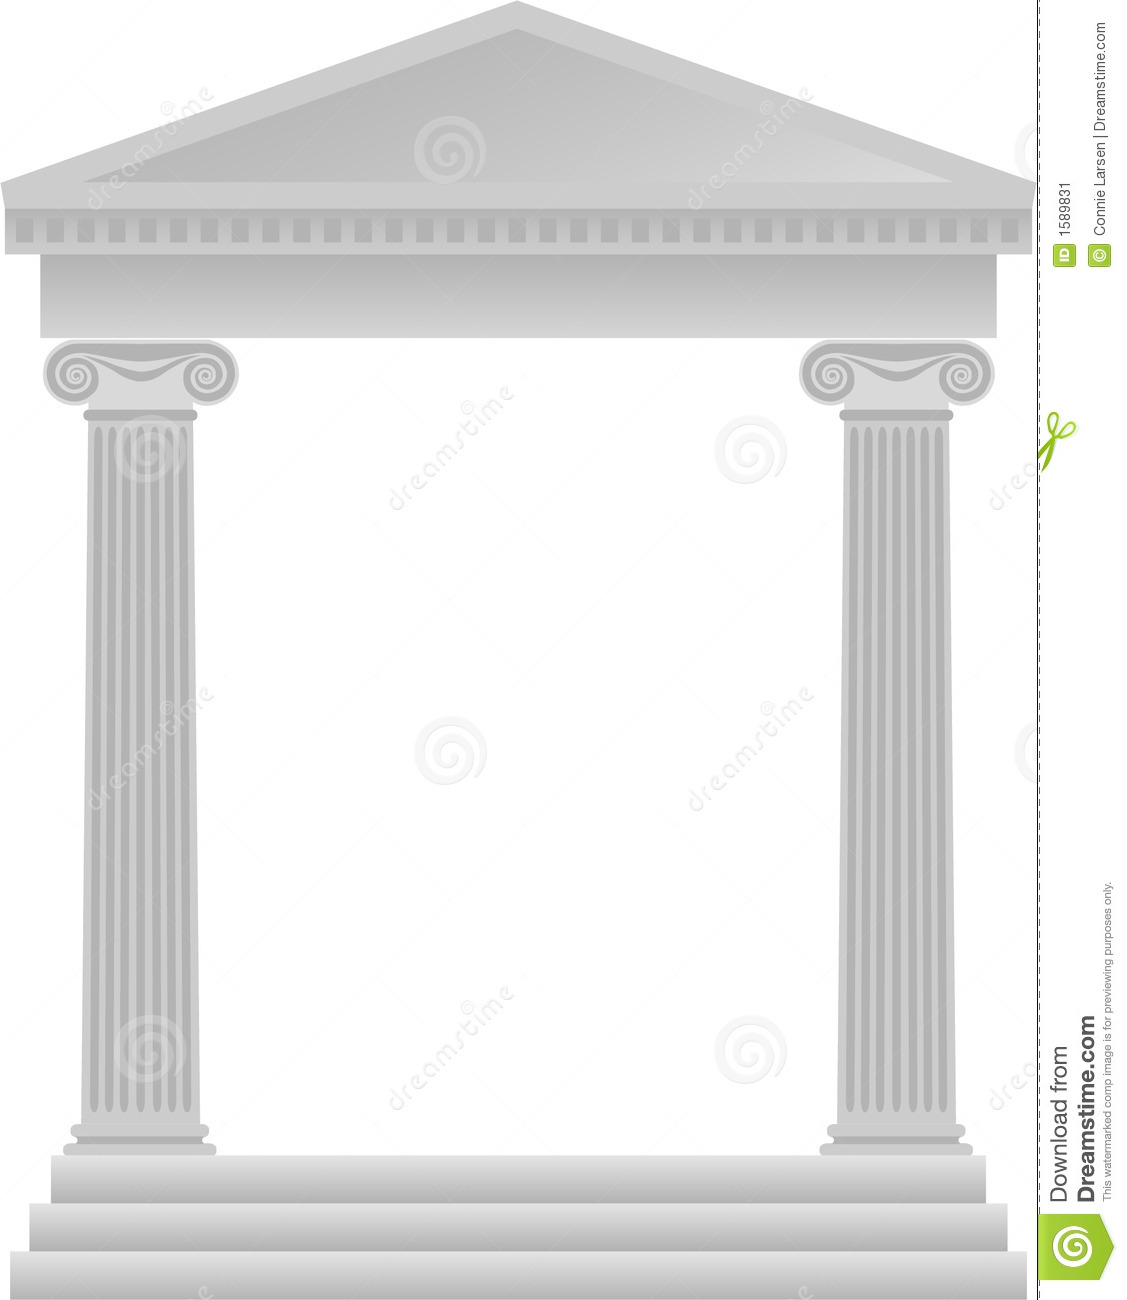 Illustration Of Ionic Style Greek Architecture For Use As A Frame Or